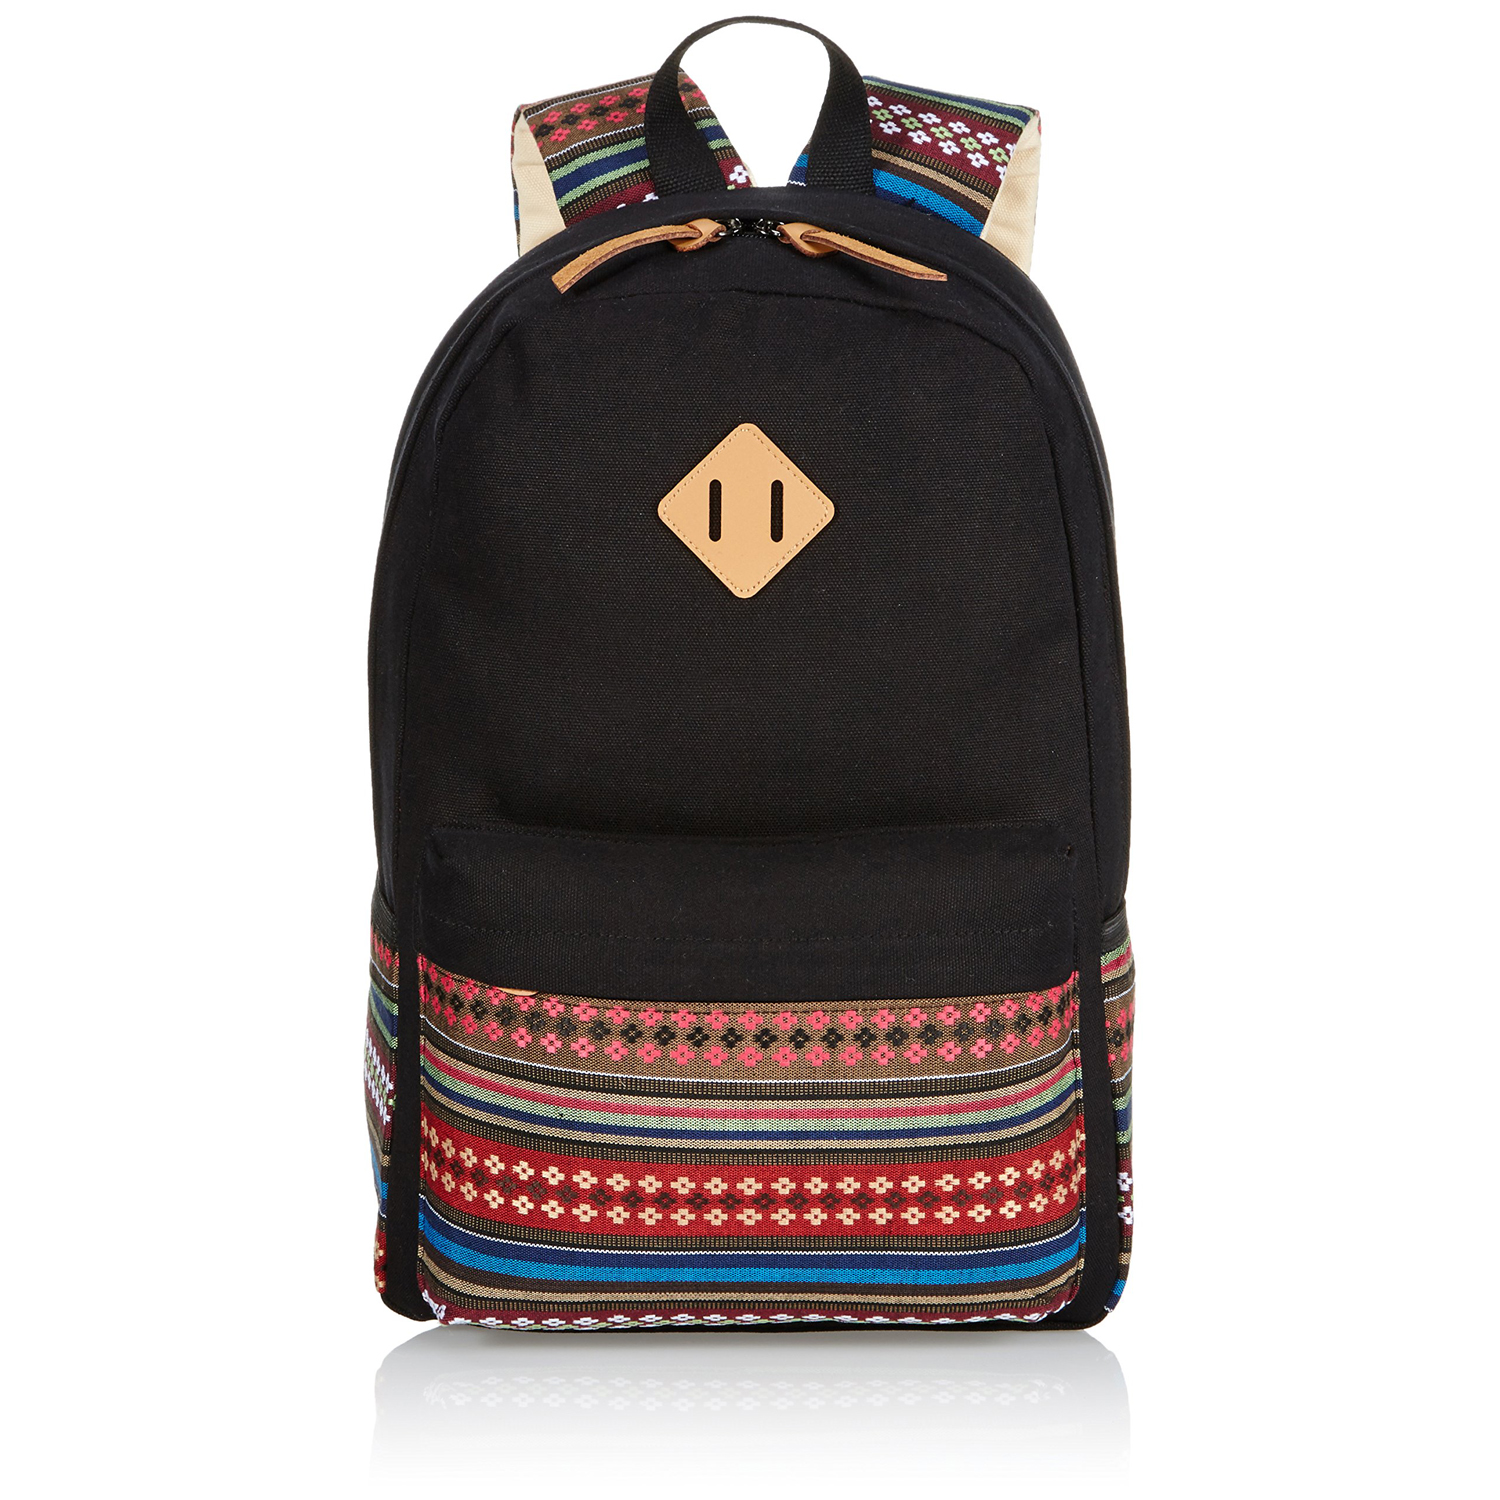 TFTP Ladies Vintage Canvas Backpack Retro Vintage Backpack For Picnic  University Backpack Schoolbag